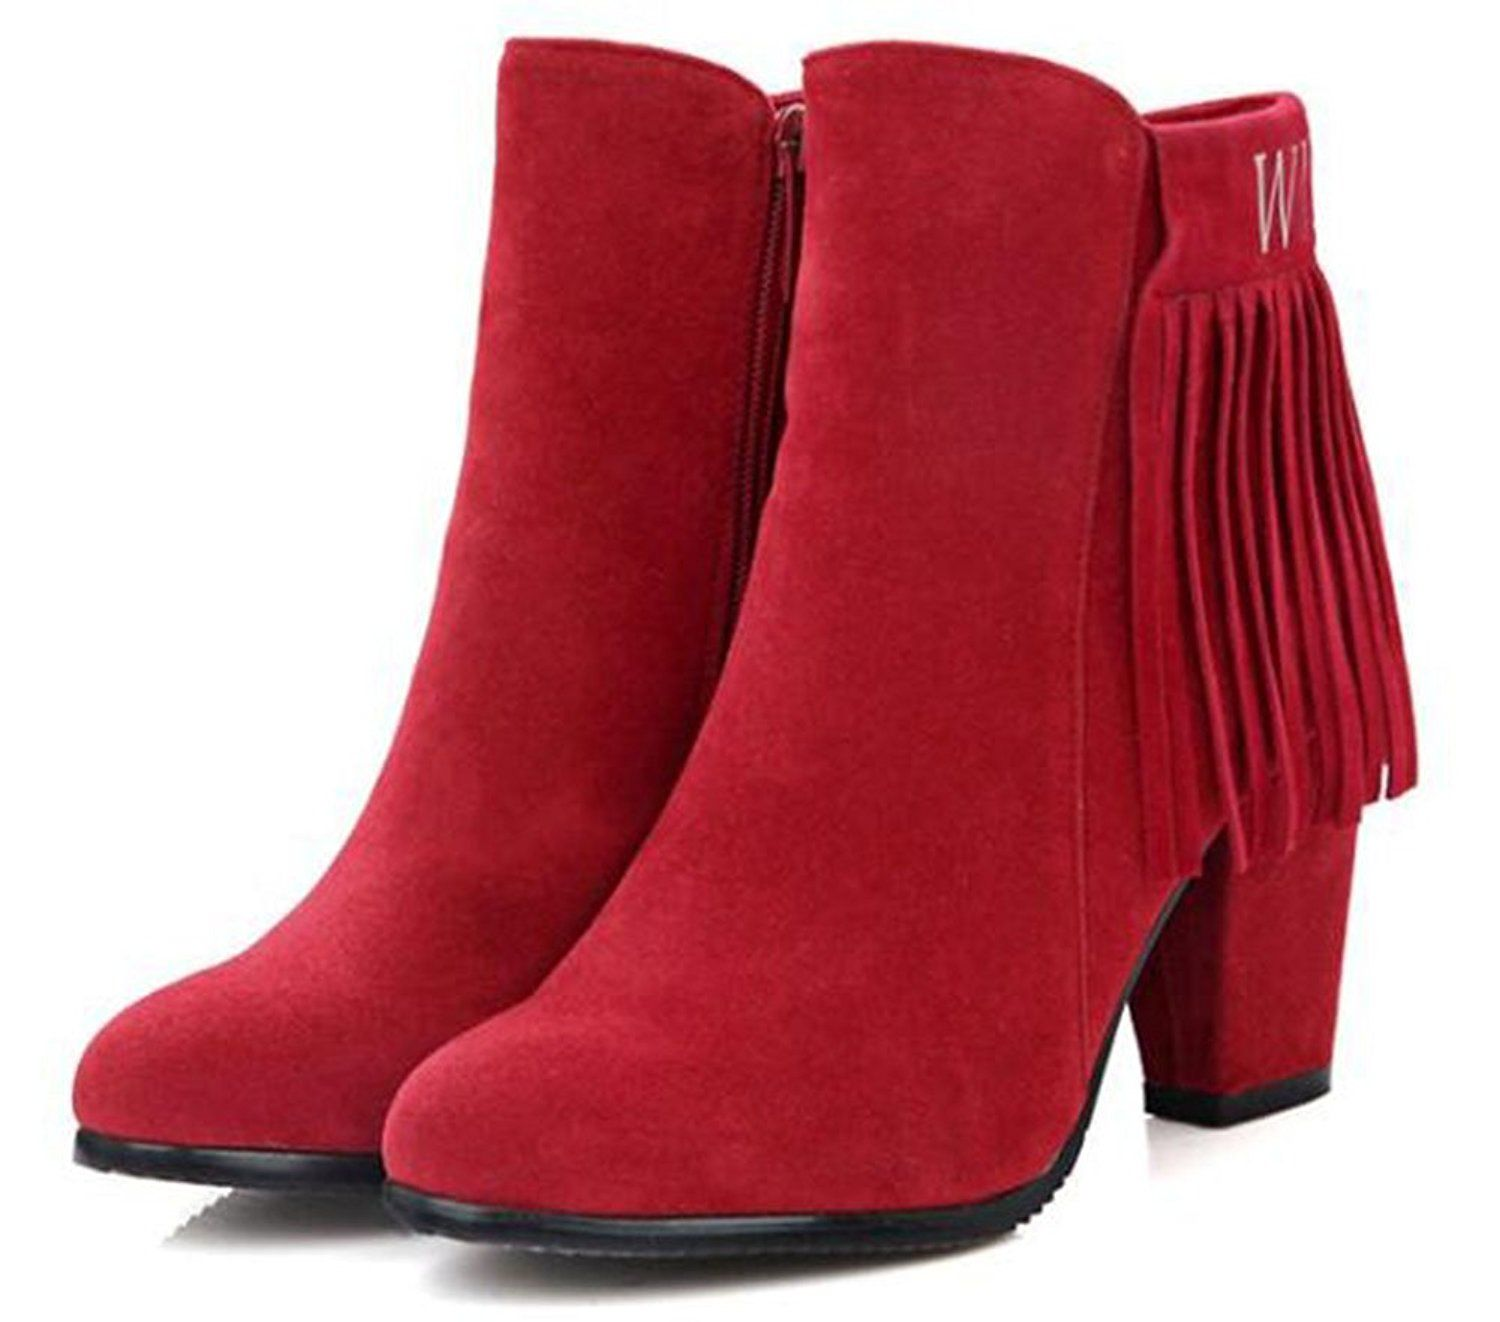 8b39e6ed2e5d CHFSO Women s Fall Trendy Solid Velvet Tassel Round Toe Zipper High Chunky  Heel Ankle Boots    Check out this great product.  womensboots